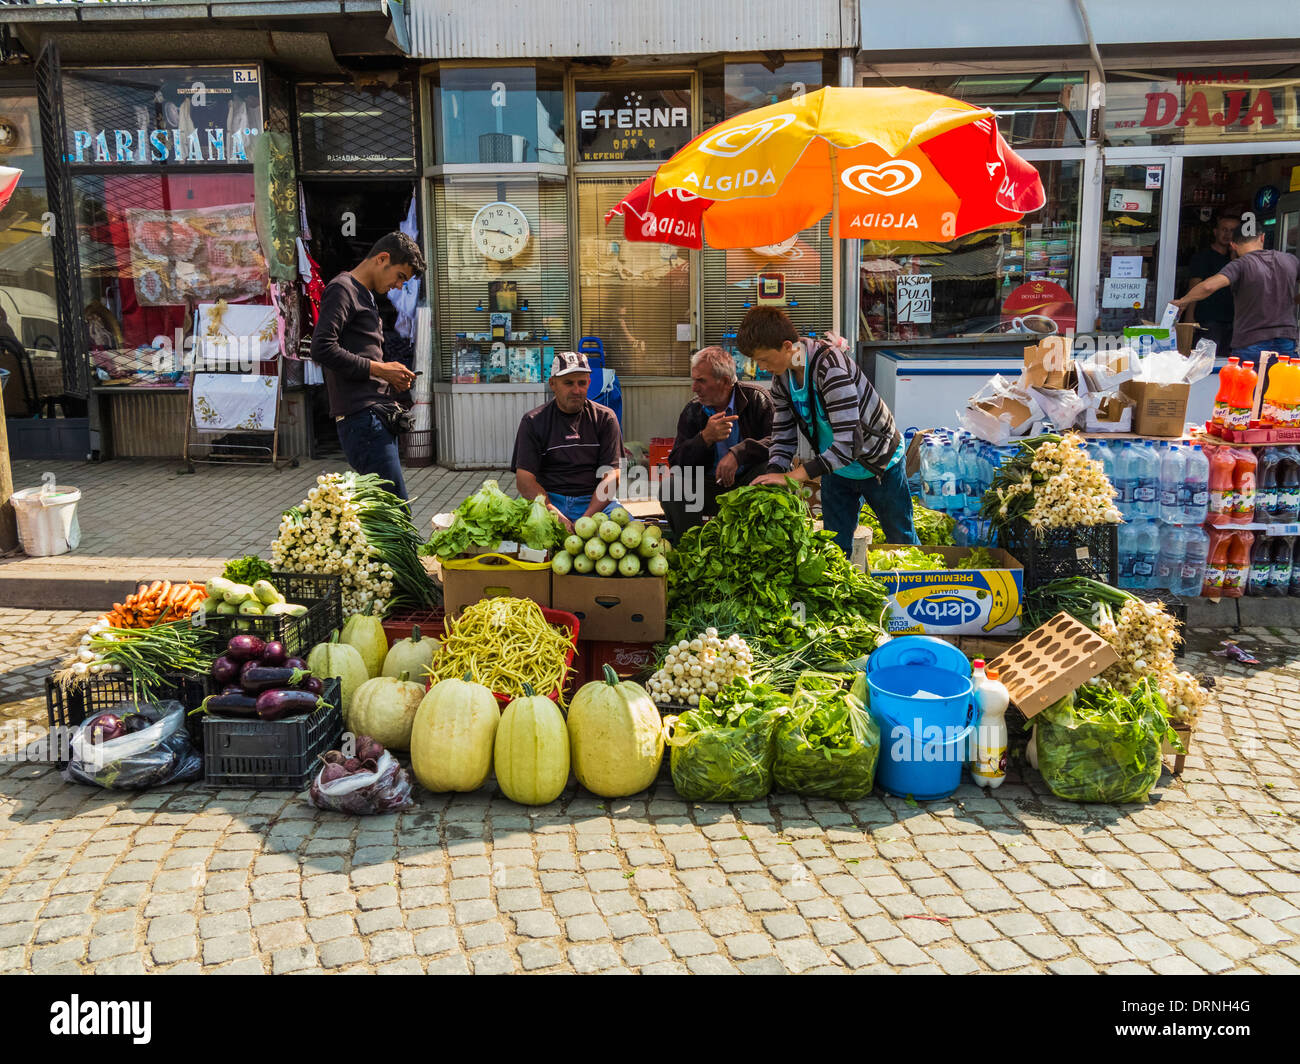 Sellers in the Bazaar market place in Pristina, Kosovo, Europe - Stock Image